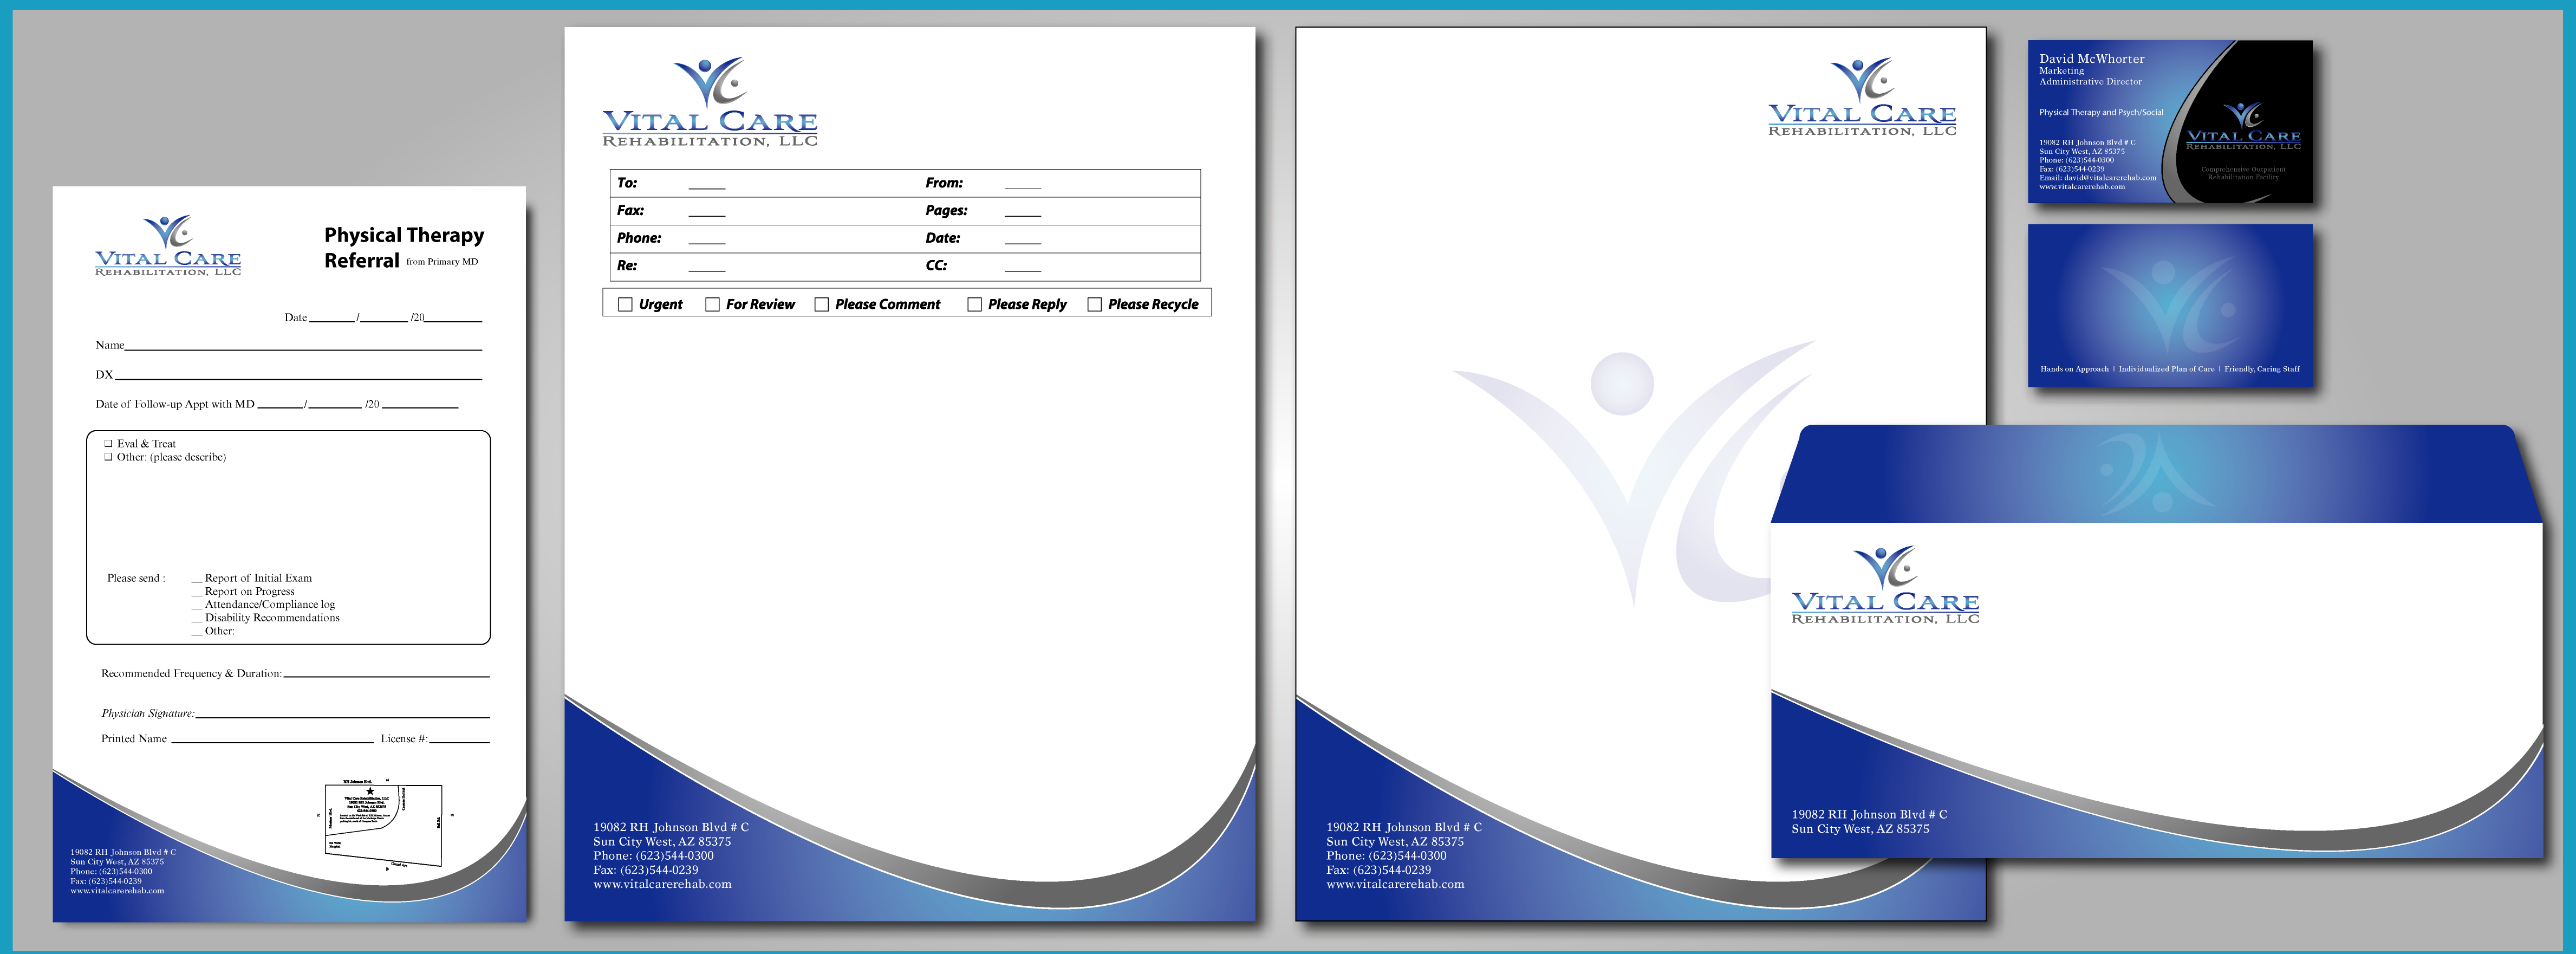 out this design for Business Card, Letter Head, Envelope, Fax Cover ...